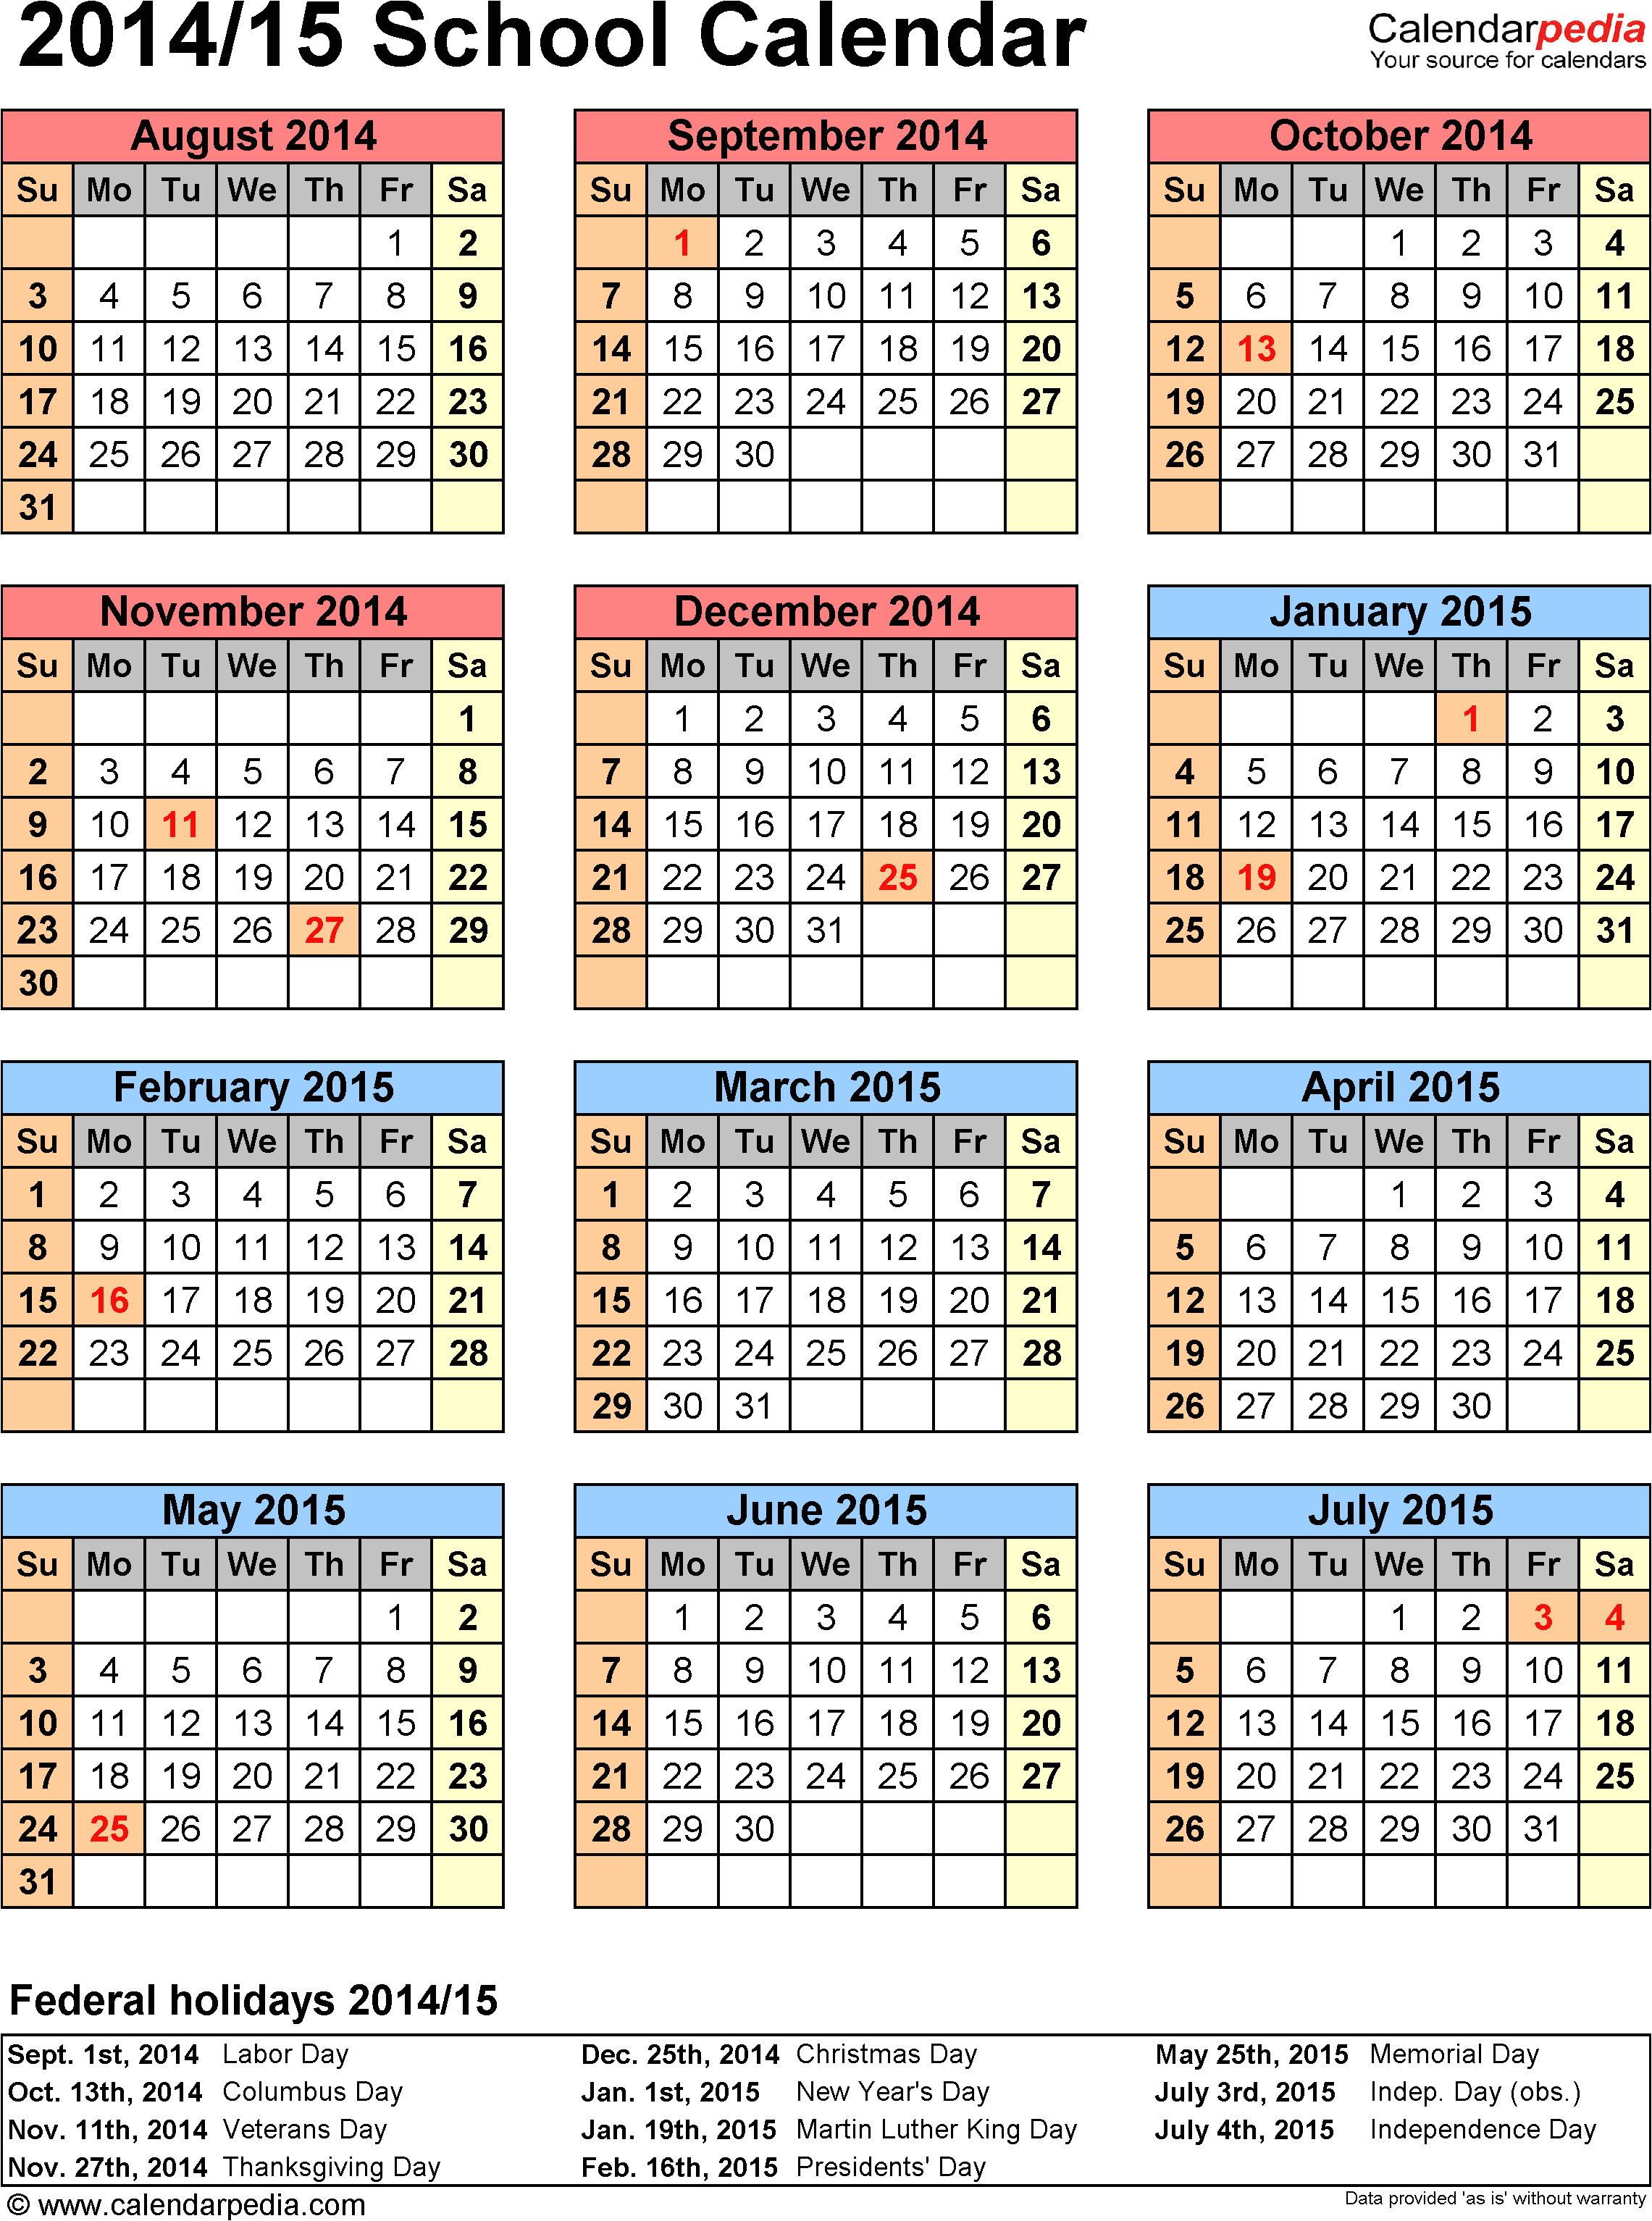 Academic Calendar Template 2014-15 School Calendars 2014 2015 as Free Printable Excel Templates